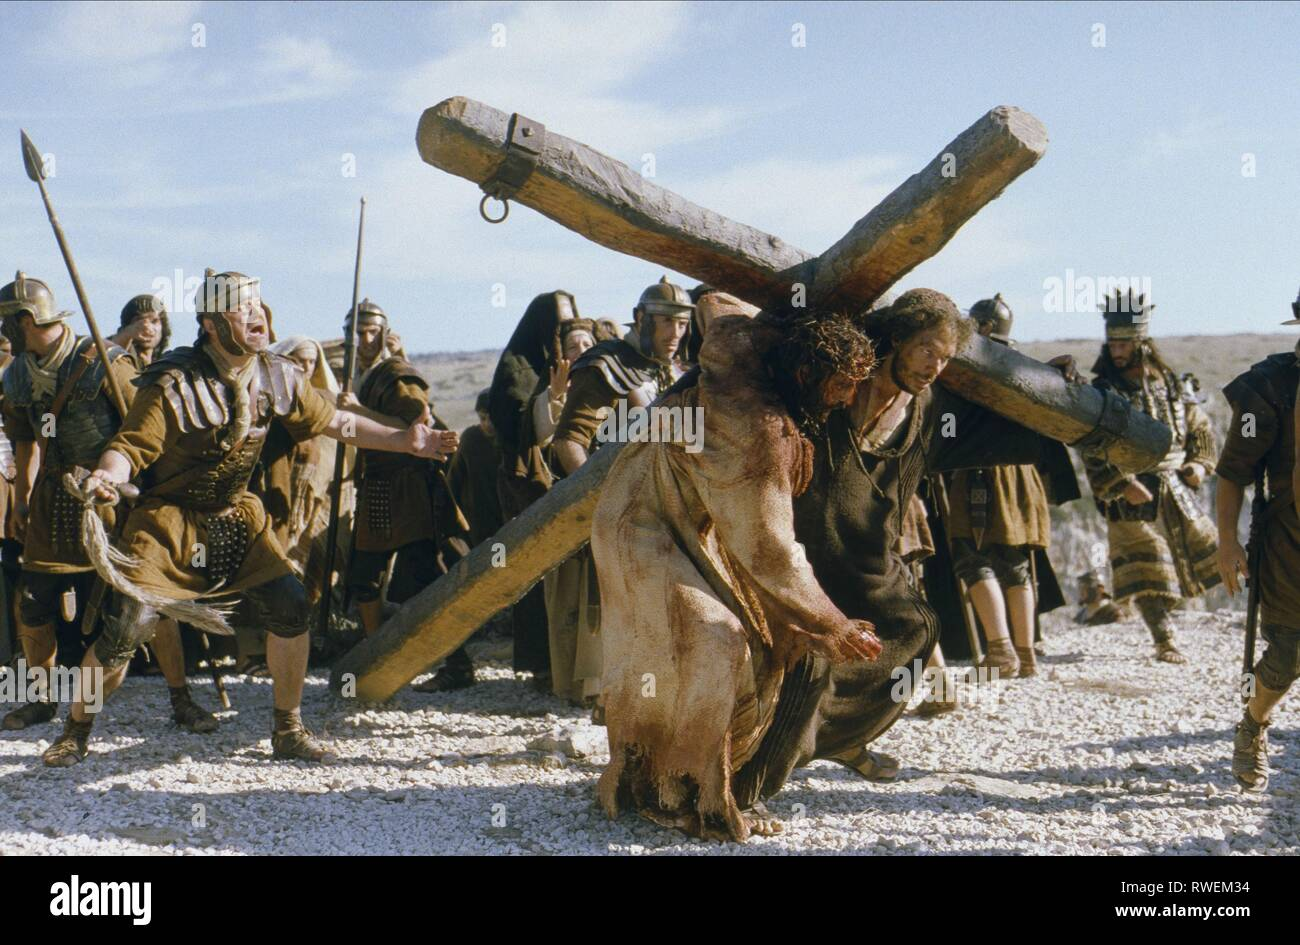 CAVIEZEL,MERZ, THE PASSION OF THE CHRIST, 2004 - Stock Image